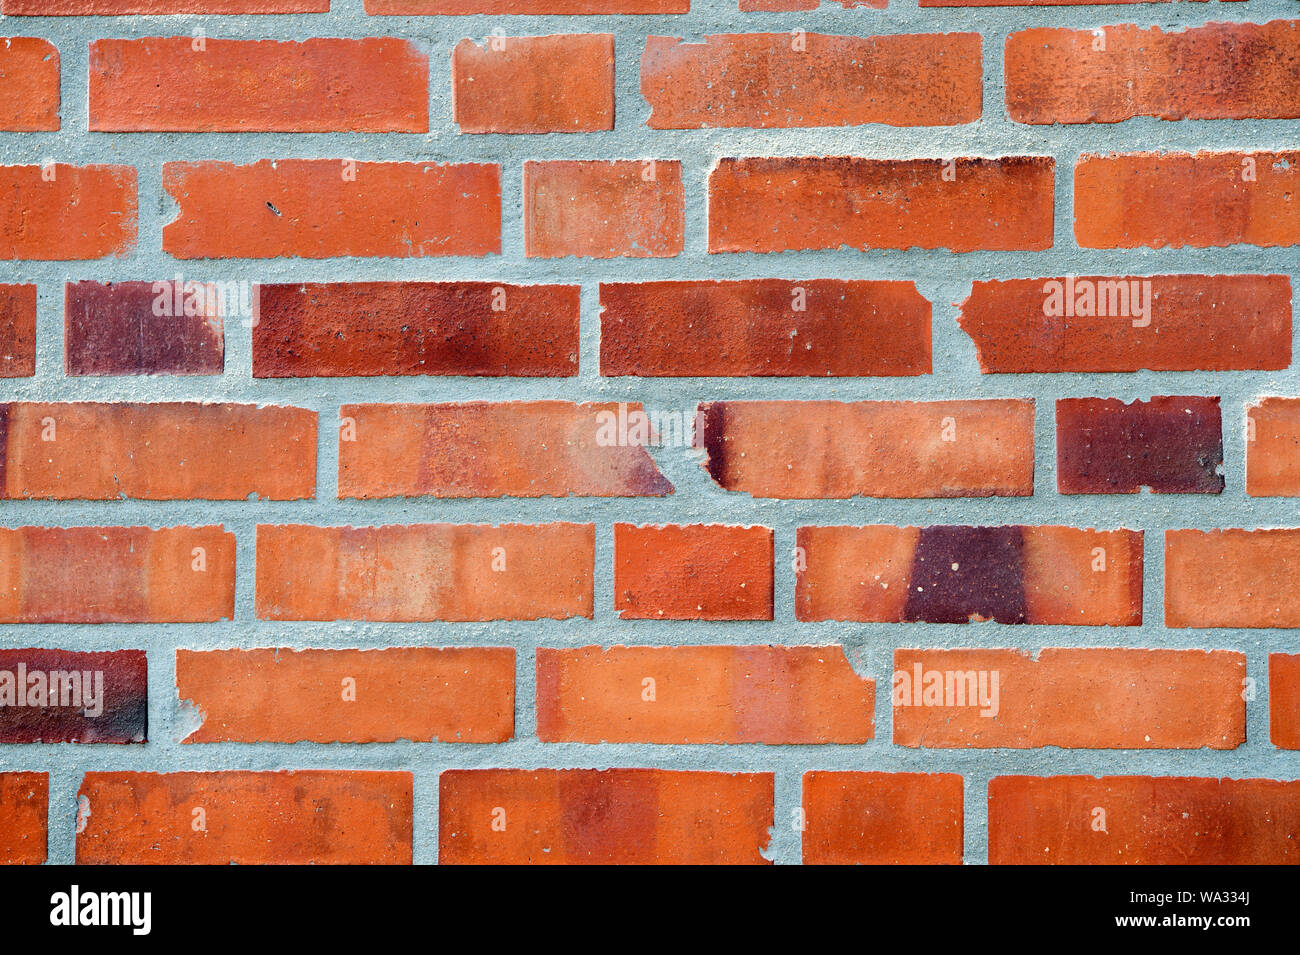 Decor and design. Red brick wall texture background. Industrial background empty grunge urban warehouse brick wall. Building material concept. Surface on masonry background. Abstract backdrop. Stock Photo